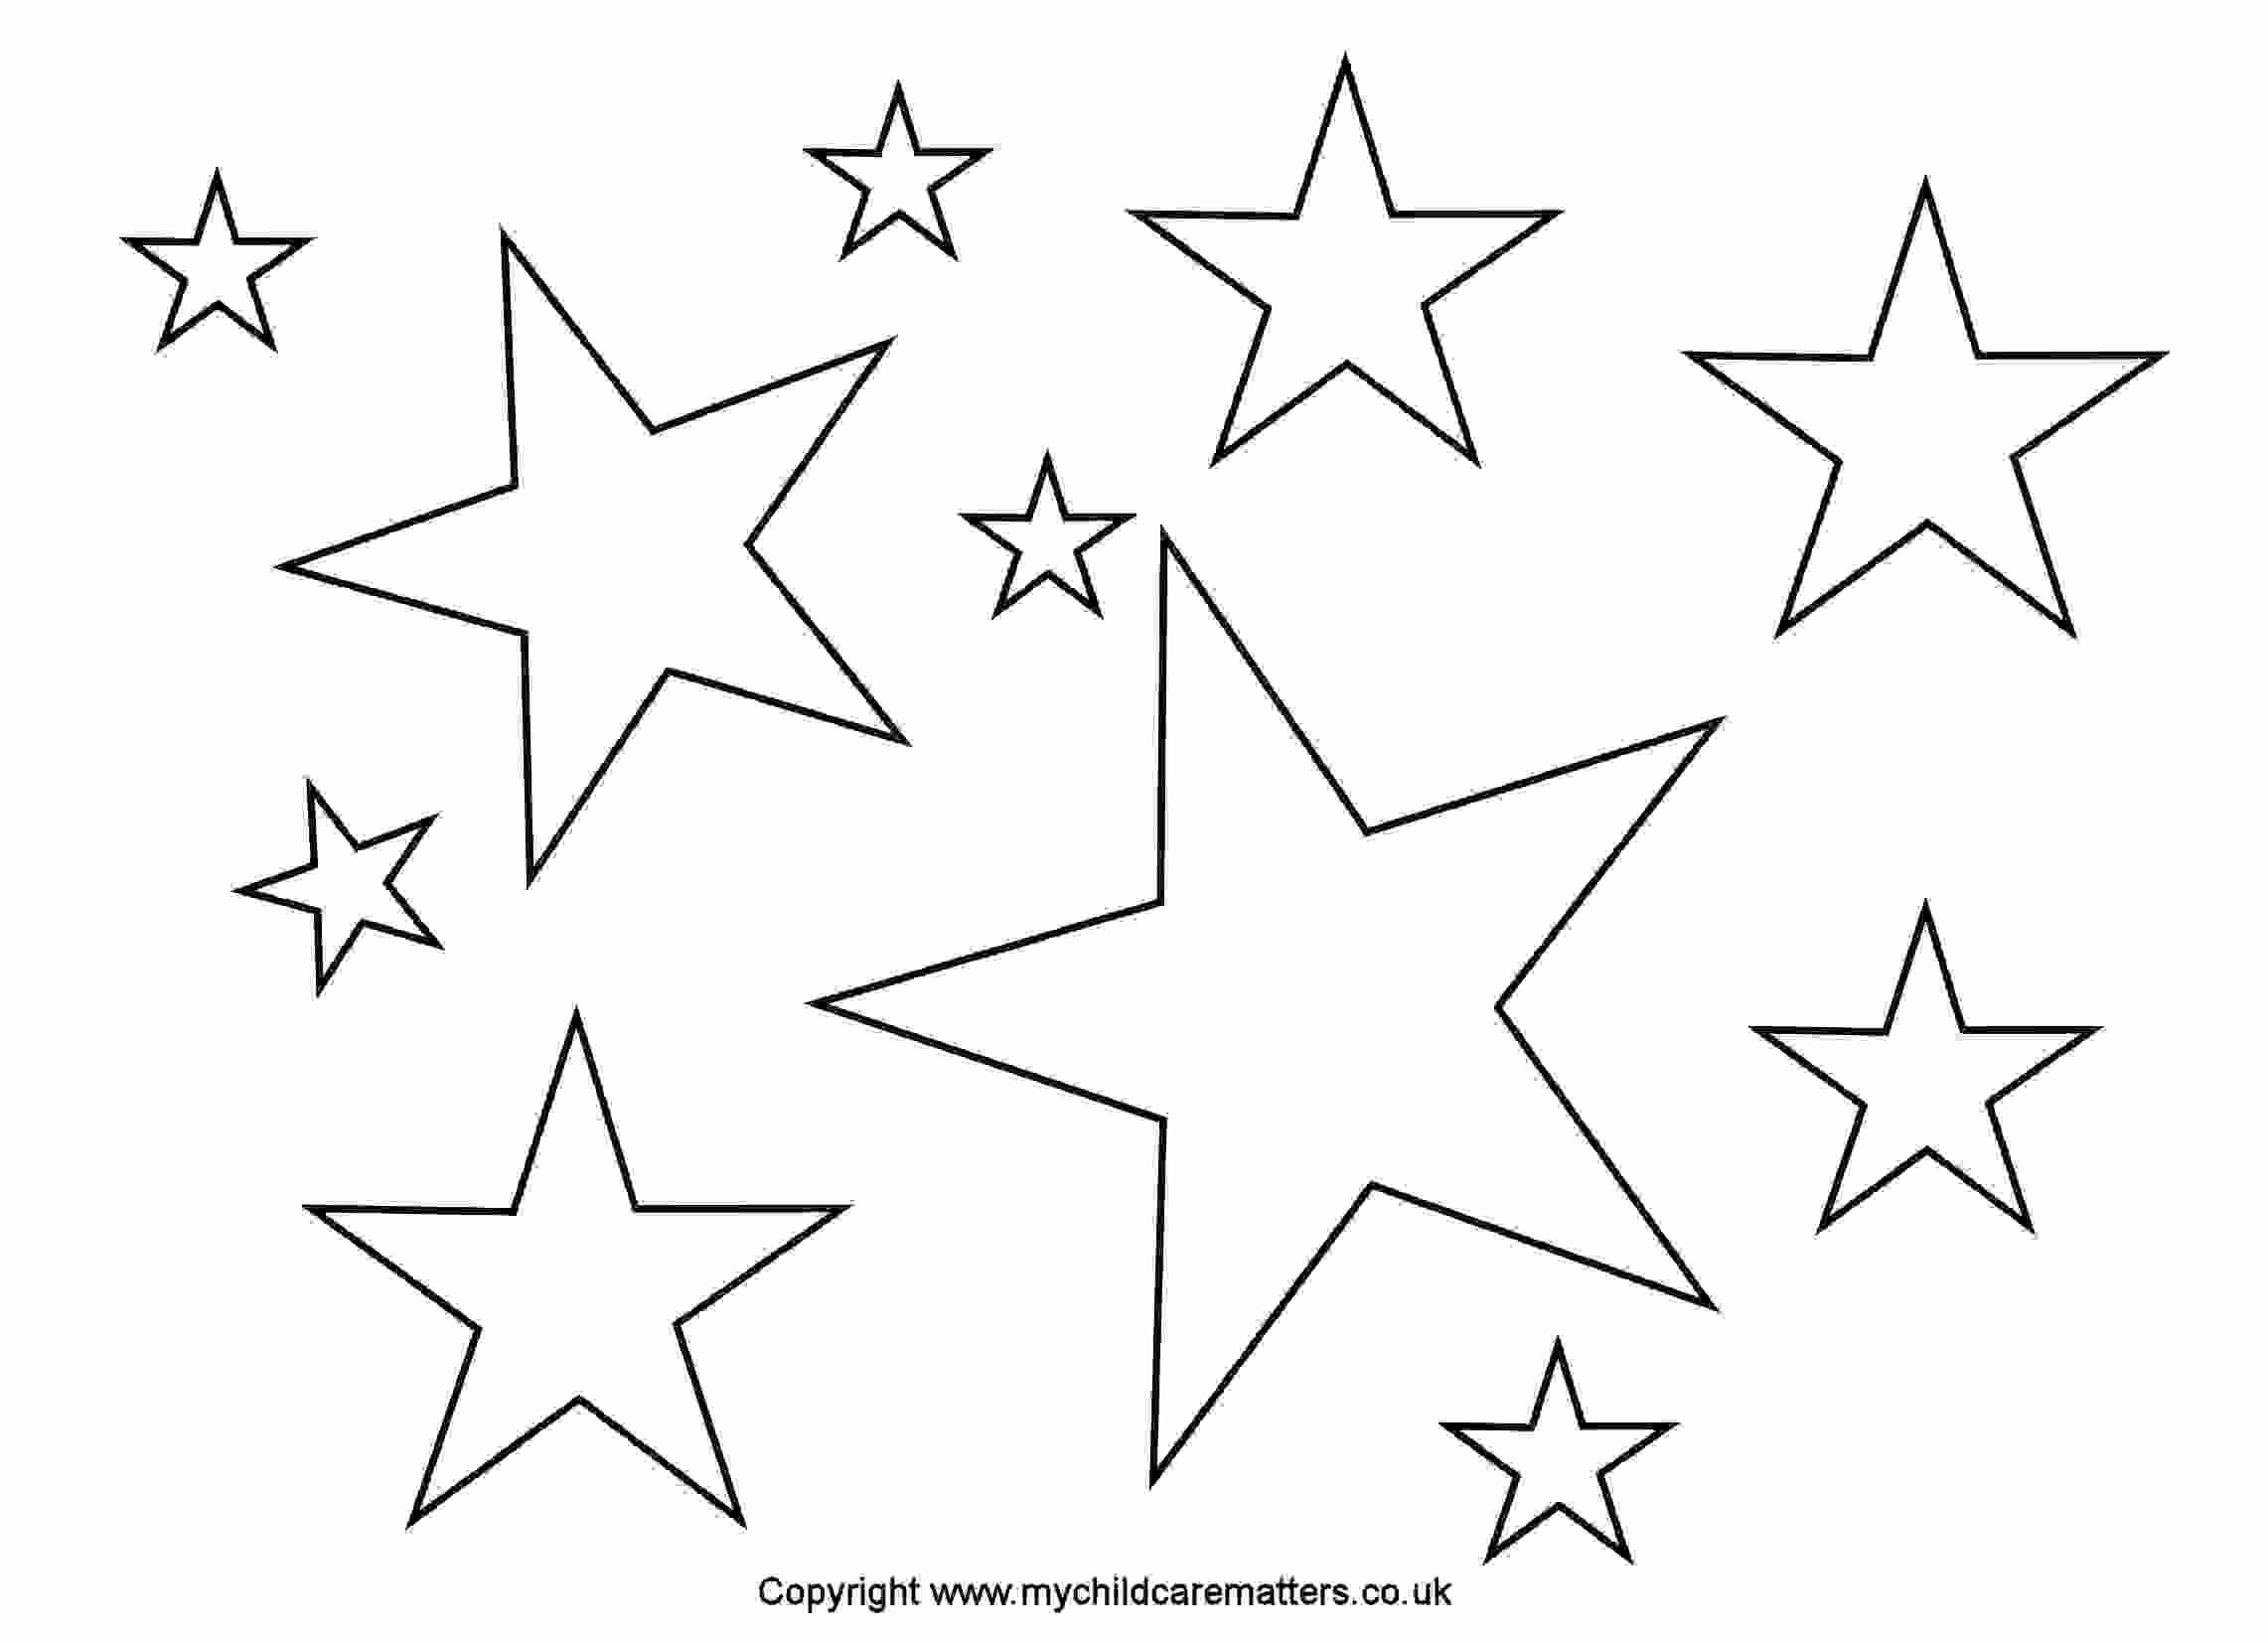 10 Inch Star Template Awesome Star Outline Images 1 Inch Star Pattern Use the Printable